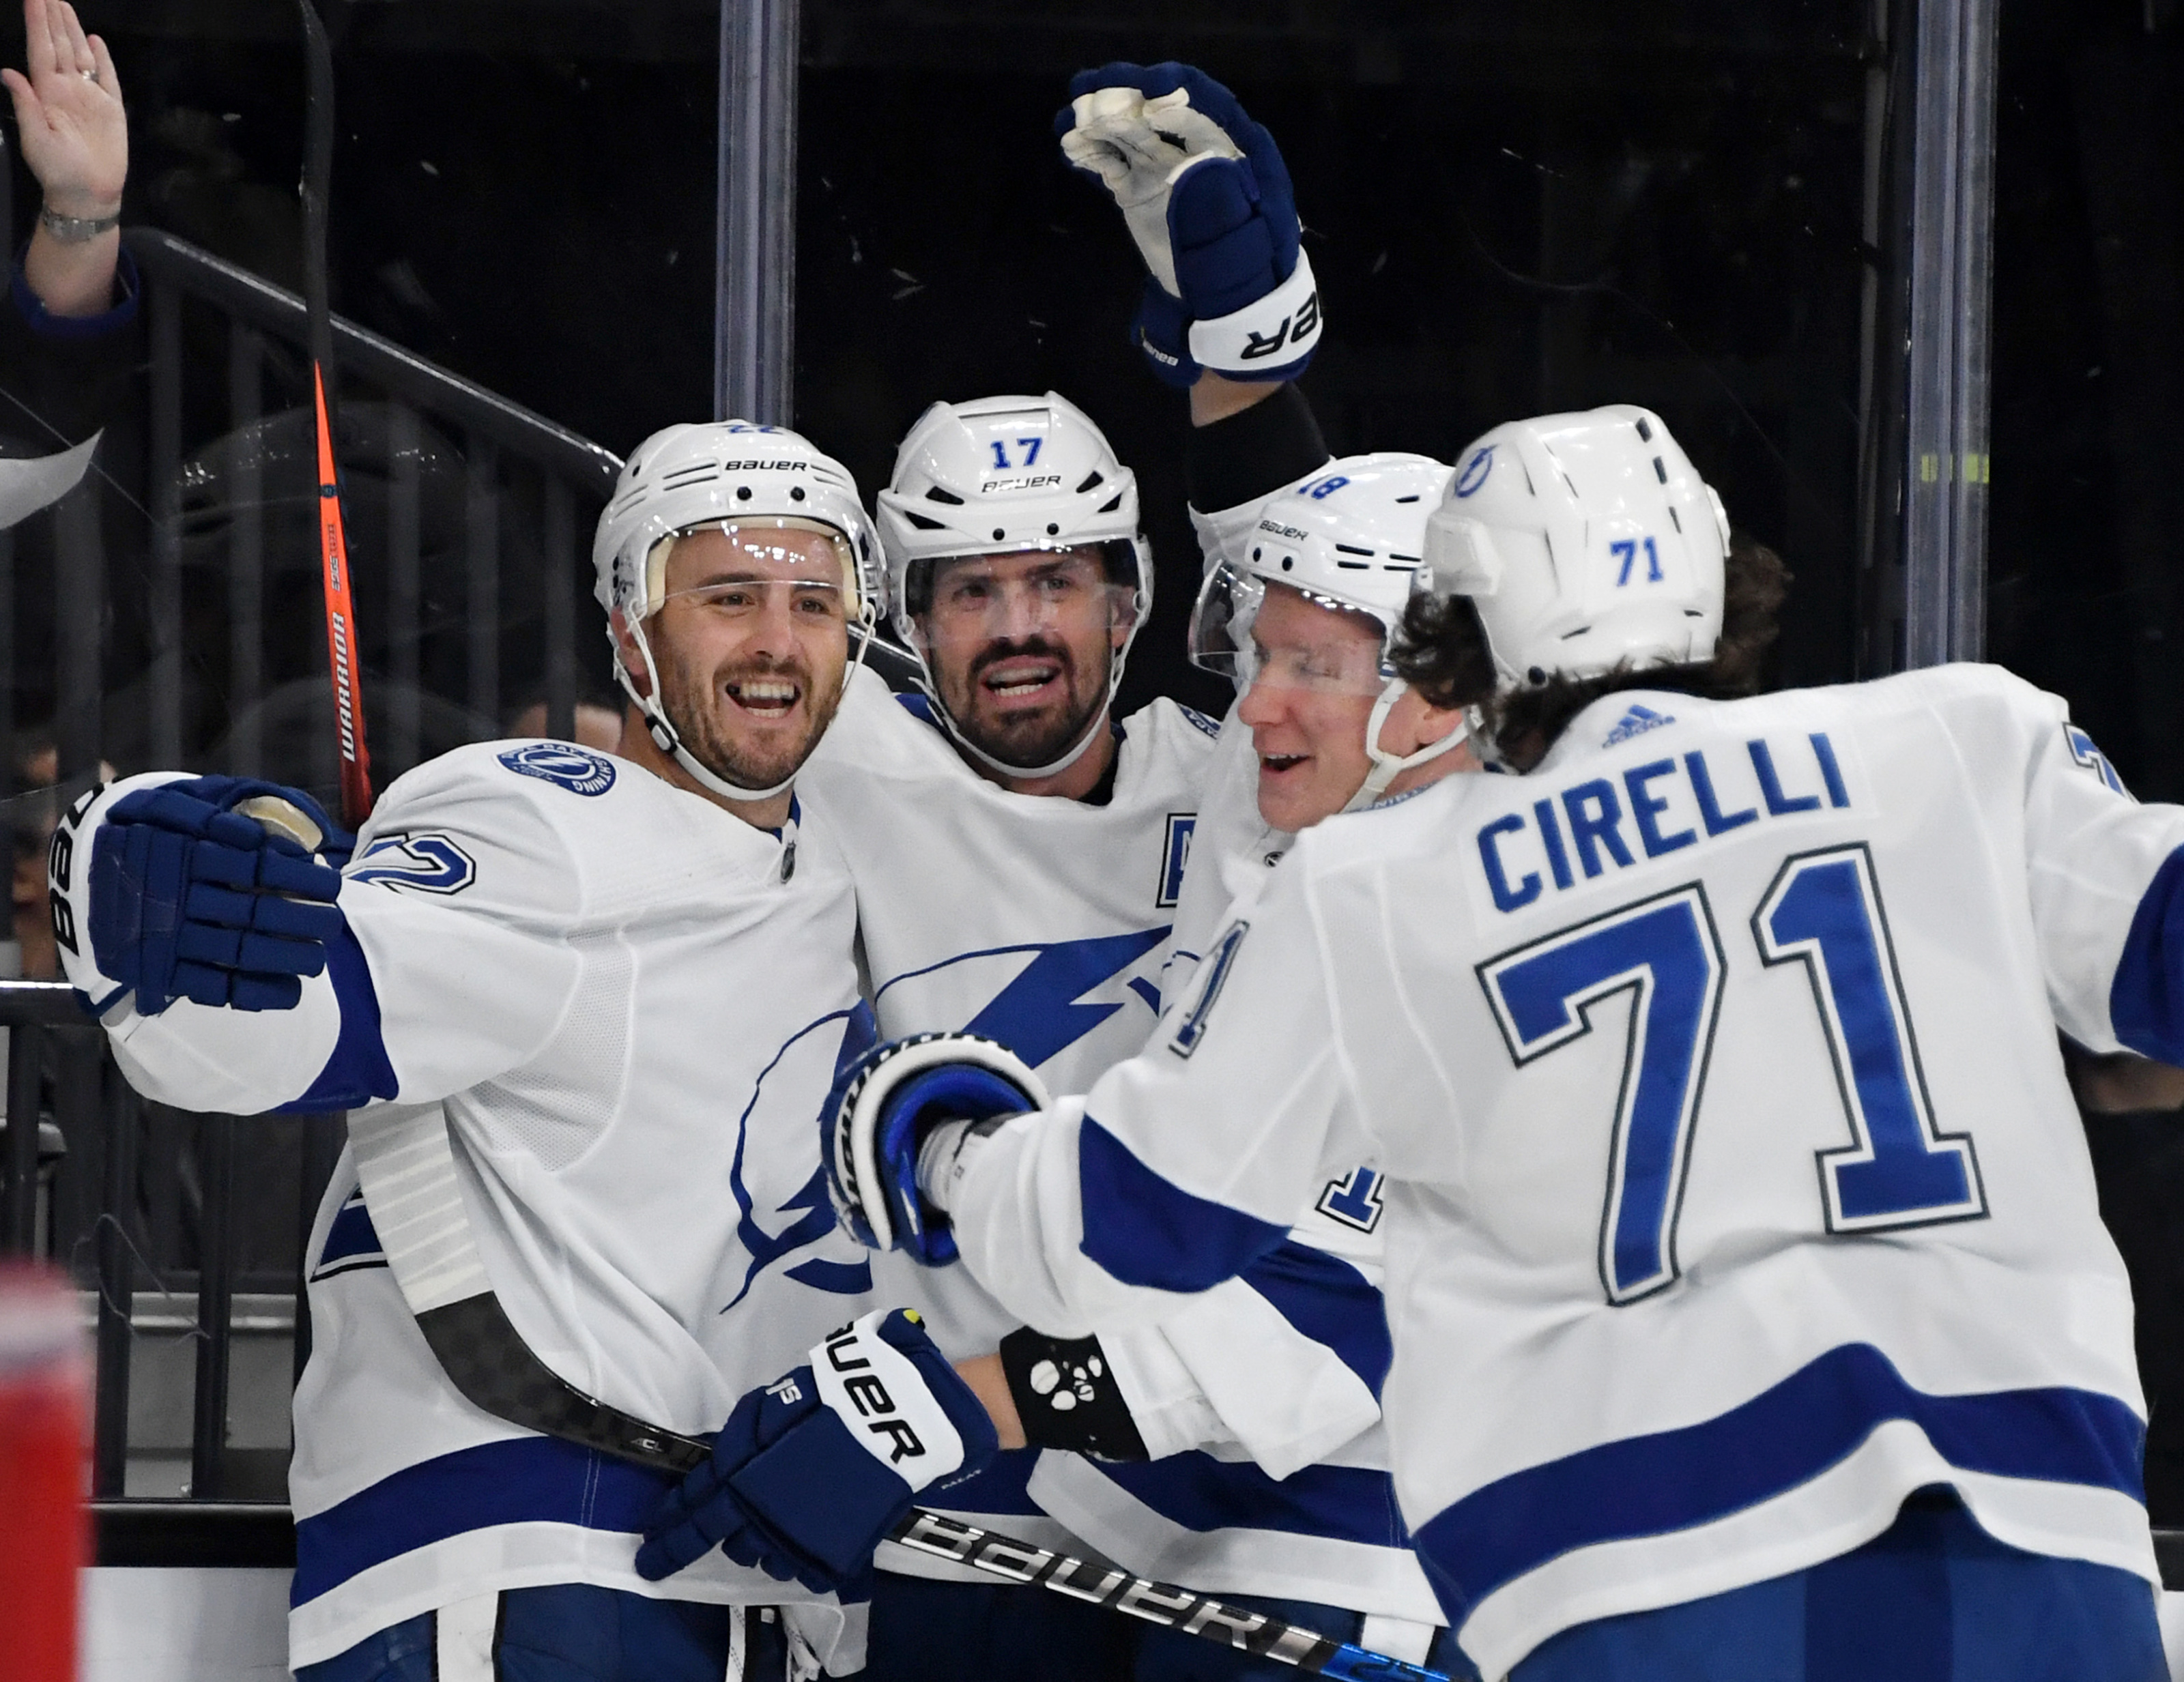 Tampa Bay Lightning: Some positives during this dark time